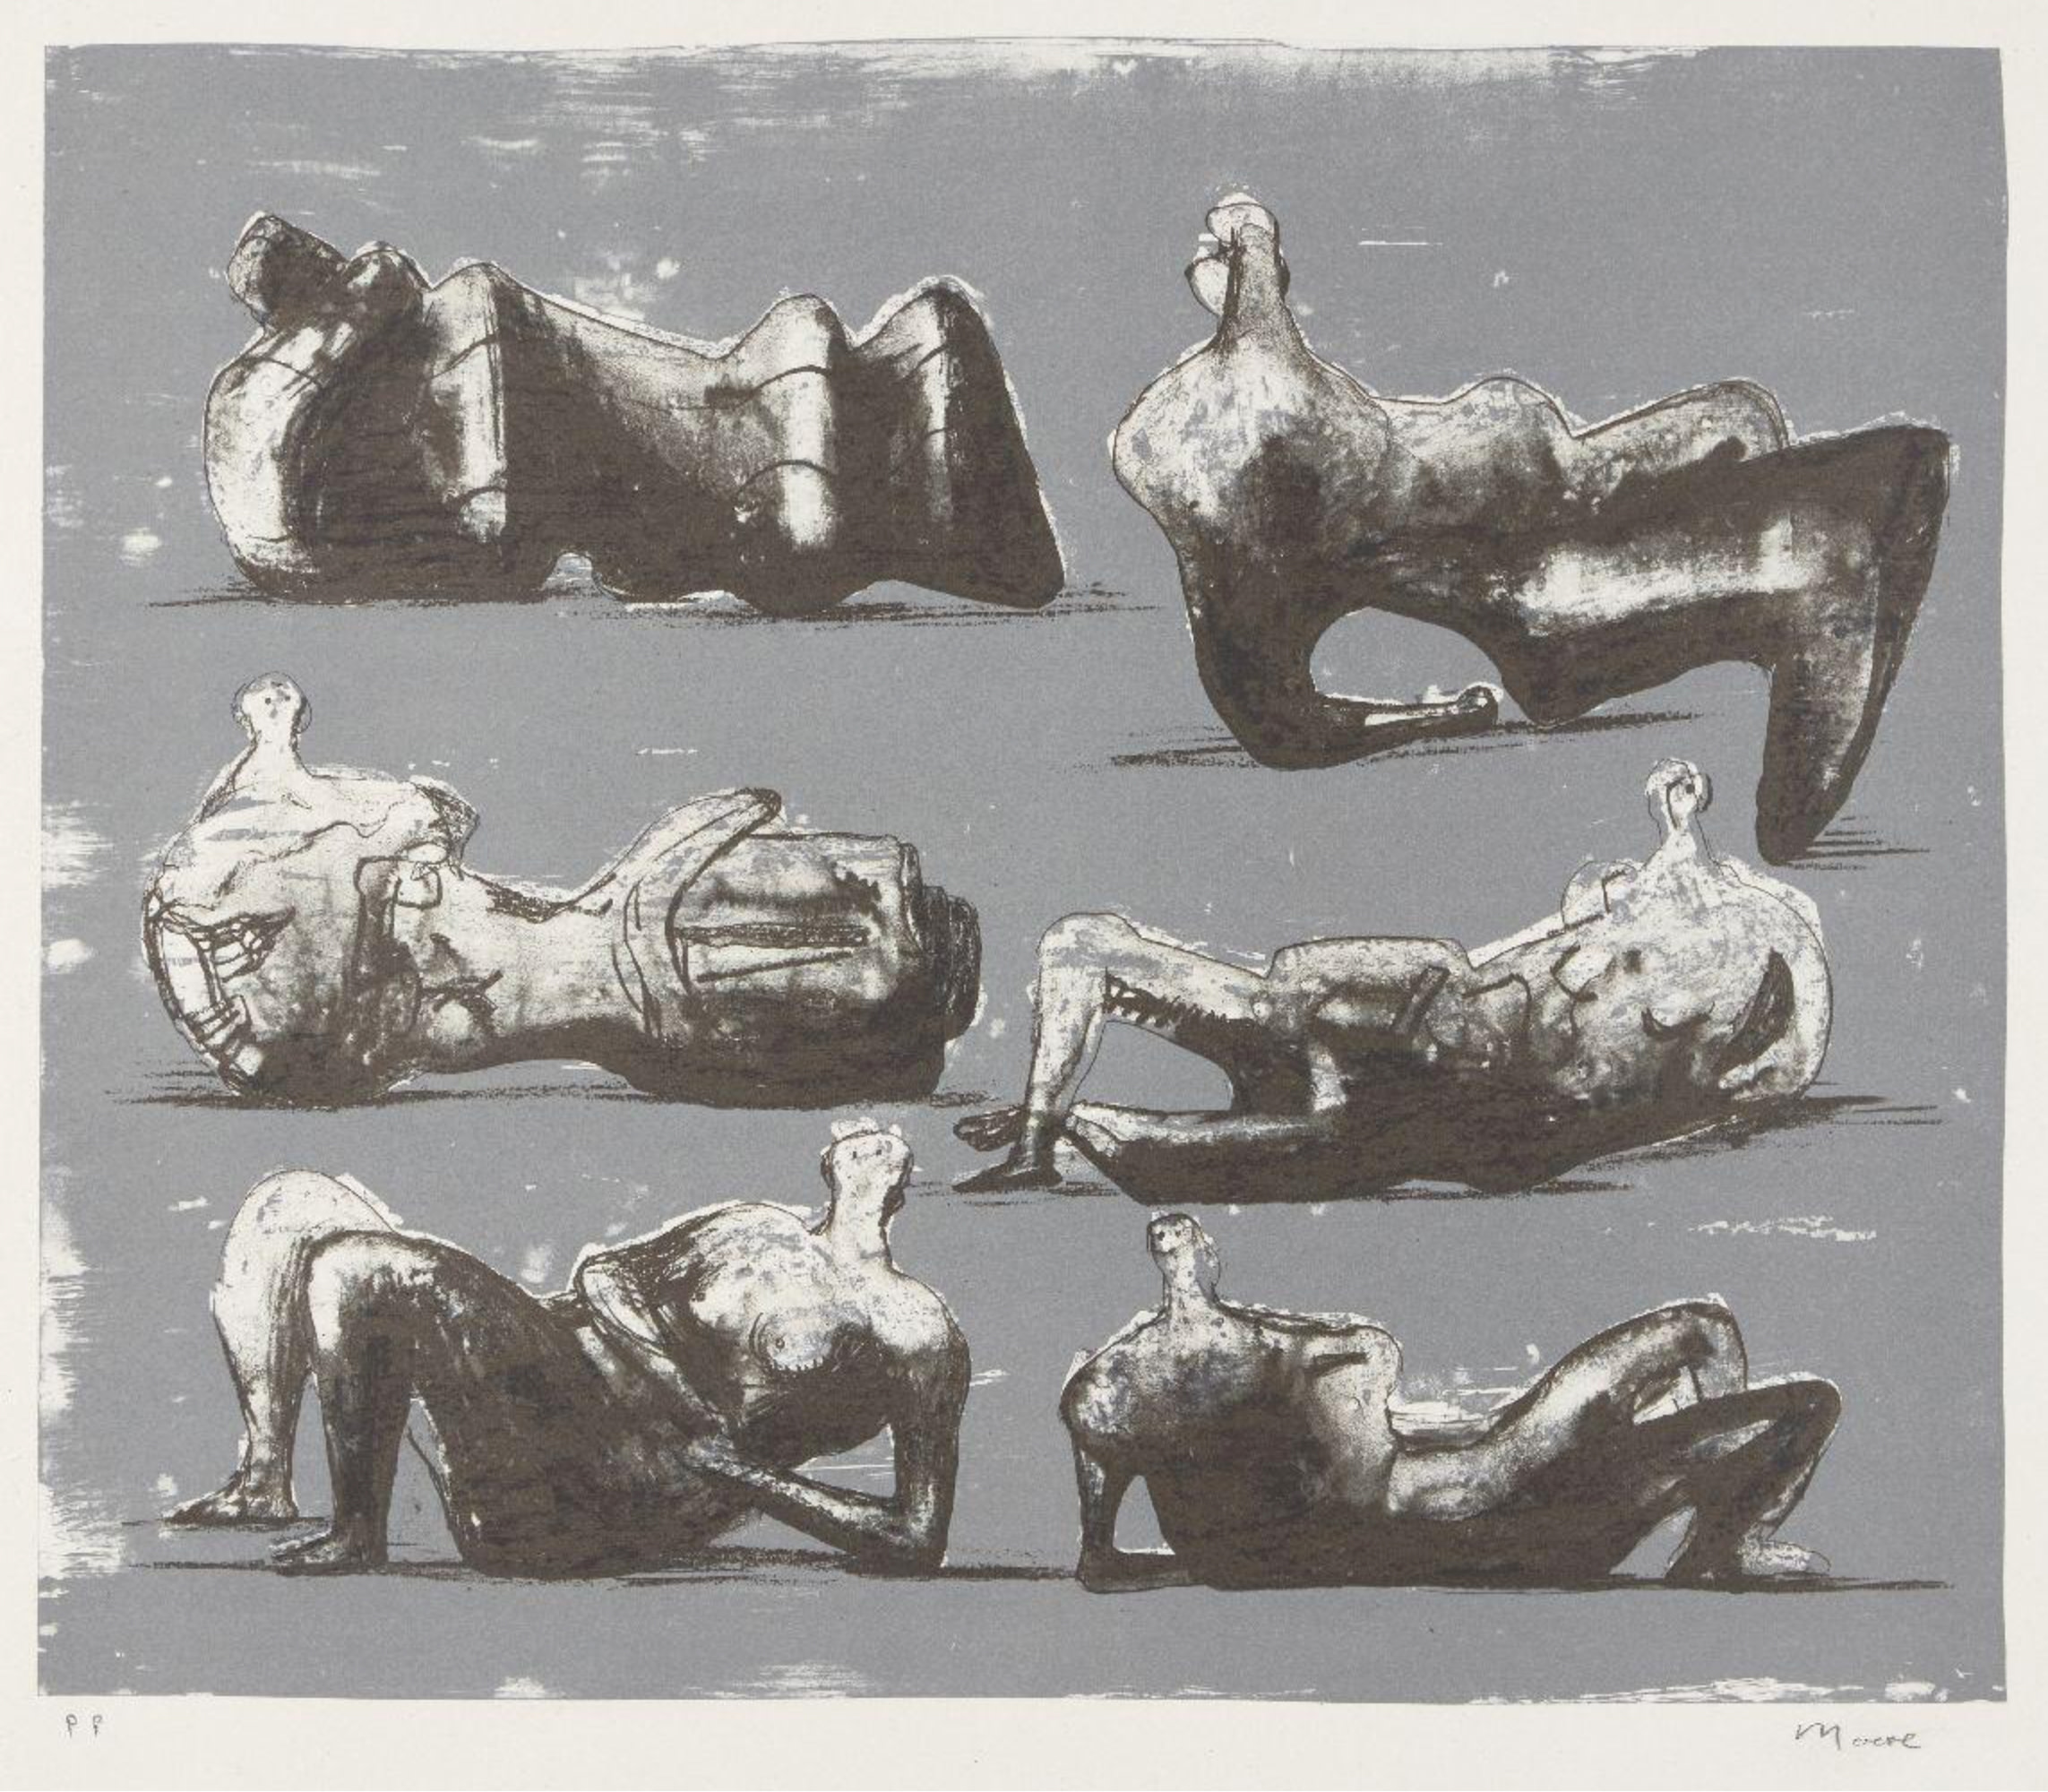 "<span class=""link fancybox-details-link""><a href=""/artists/111-henry-moore-om-ch/works/7309-henry-moore-om-ch-six-reclining-figures-cramer-298-1973/"">View Detail Page</a></span><div class=""artist""><strong>Henry Moore OM CH</strong></div> 1898–1986 <div class=""title""><em>Six Reclining Figures [Cramer 298]</em>, 1973</div> <div class=""signed_and_dated"">signed and inscribed 'P.P'</div> <div class=""medium"">lithograph in colours on T.H. Saunders wove paper<br /> a printer's proof aside from the edition of 100</div> <div class=""dimensions"">image size: 31.7 x 38.1 mm<br /> sheet size:  66.5 x 52 cm</div> <div class=""edition_details"">edition of 100</div><div class=""copyright_line"">Copyright The Artist</div>"